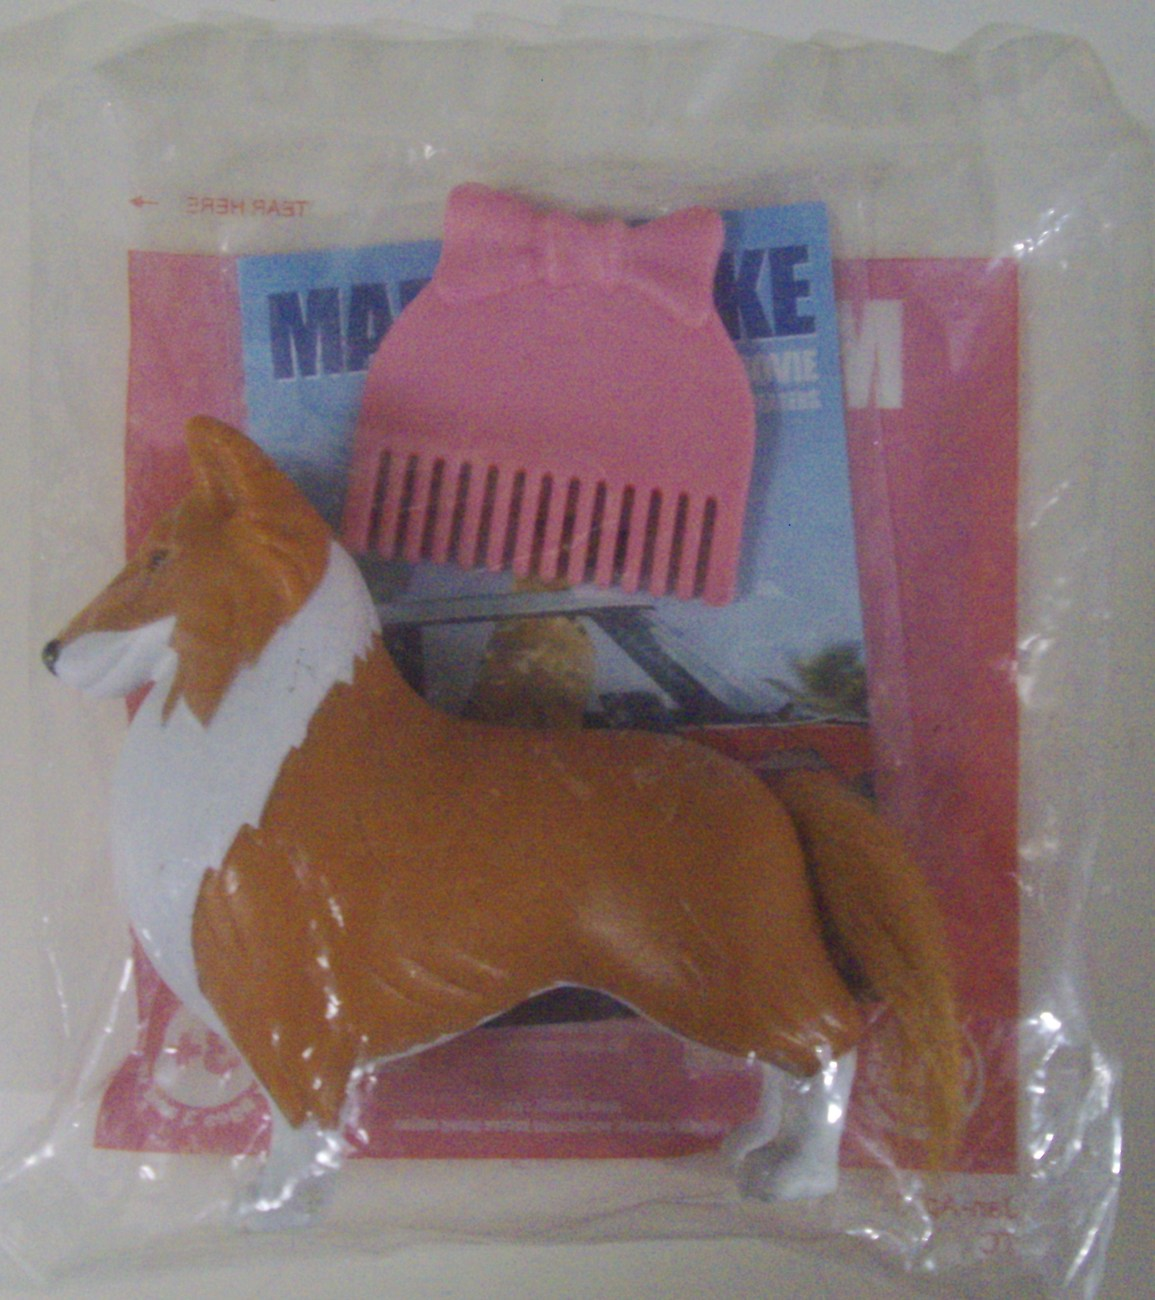 Marmaduke The Movie Comb 'N Style Jezebel BK dog toy - New